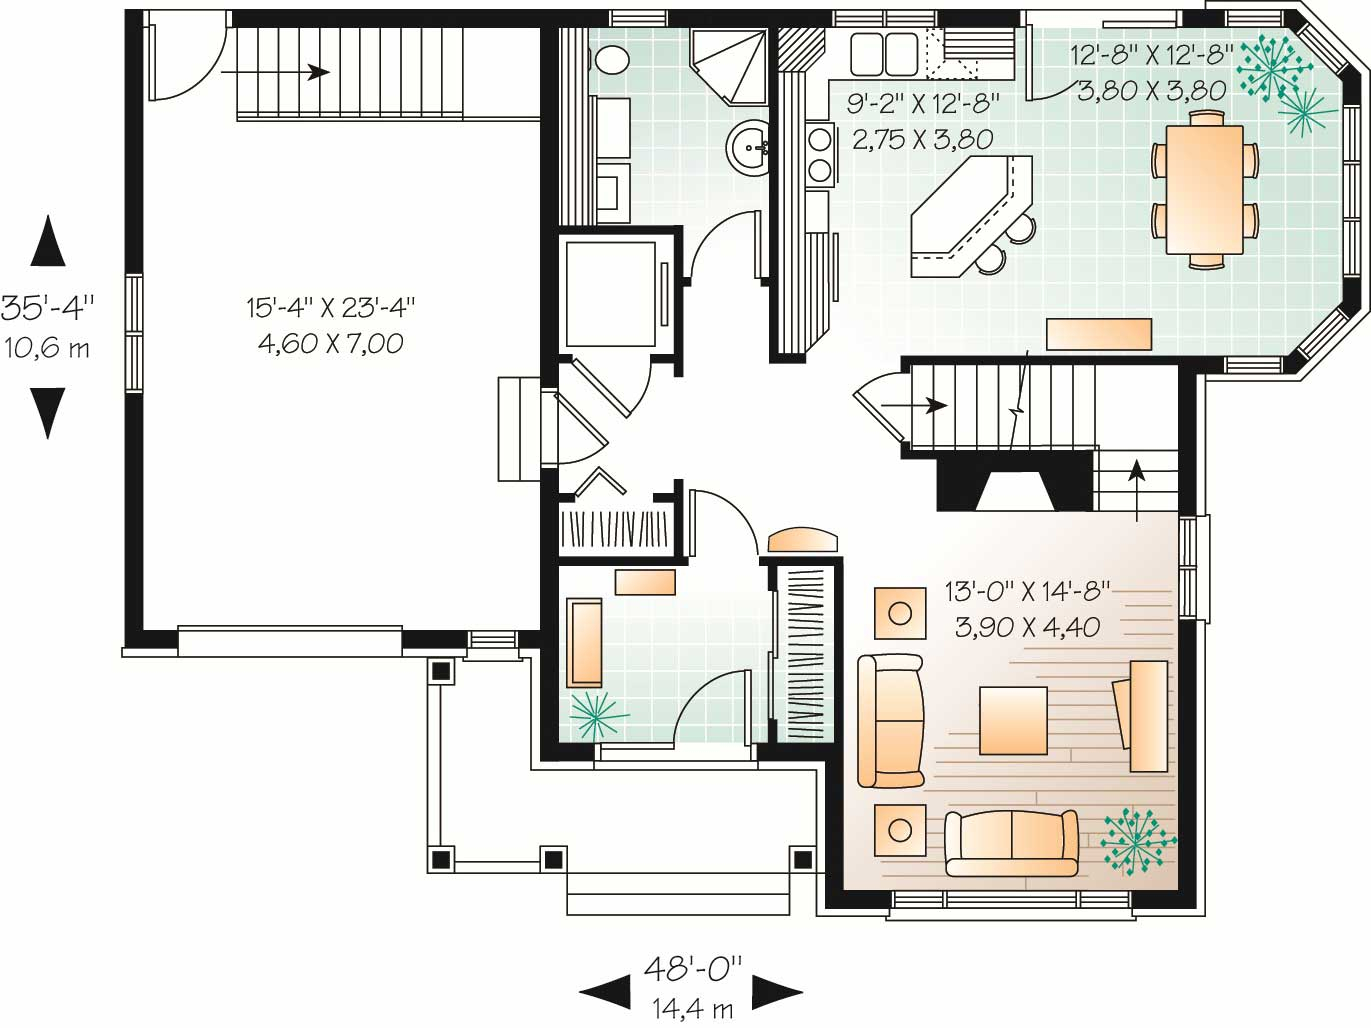 European home plan 3 bedrms 2 baths 1826 sq ft 126 Elevator home plans